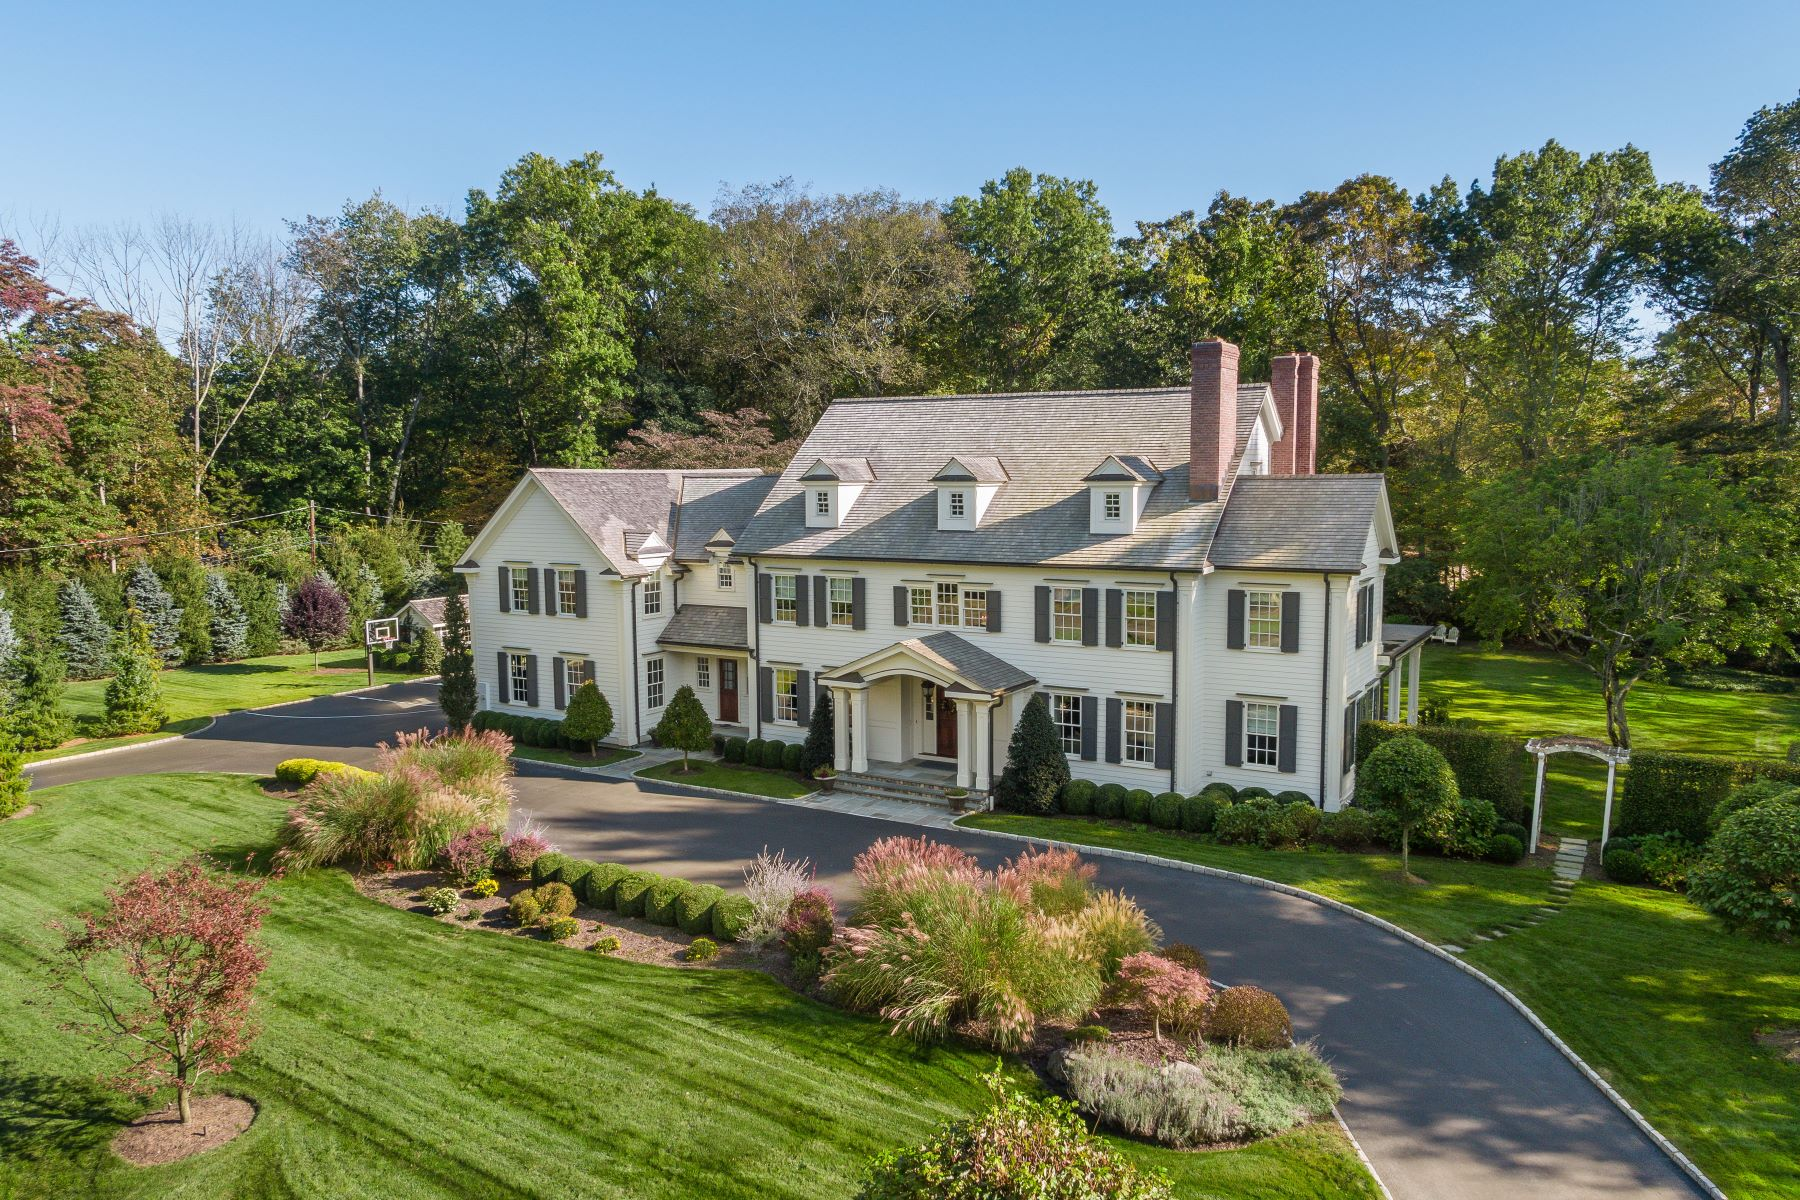 Single Family Home for Sale at Flawless Design and Uncompromising Quality 131 Fleming Lane, Fairfield, Connecticut, 06824 United States